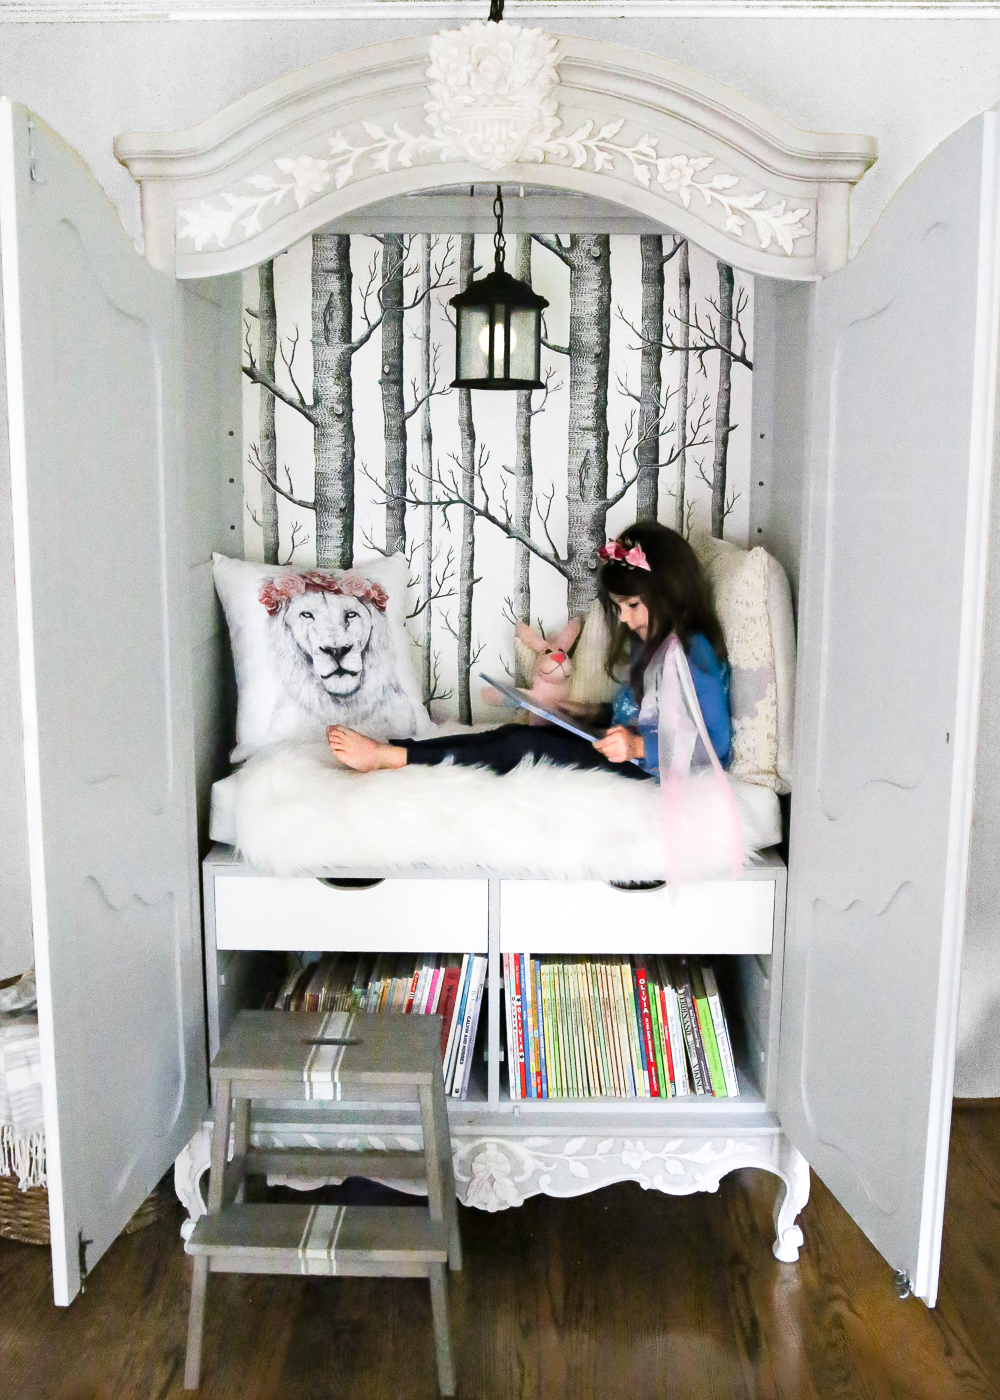 Narnia Inspired Reading Nook - Bless'er House - 30 Farmhouse Furniture Makeovers - Life on Kaydeross Creek